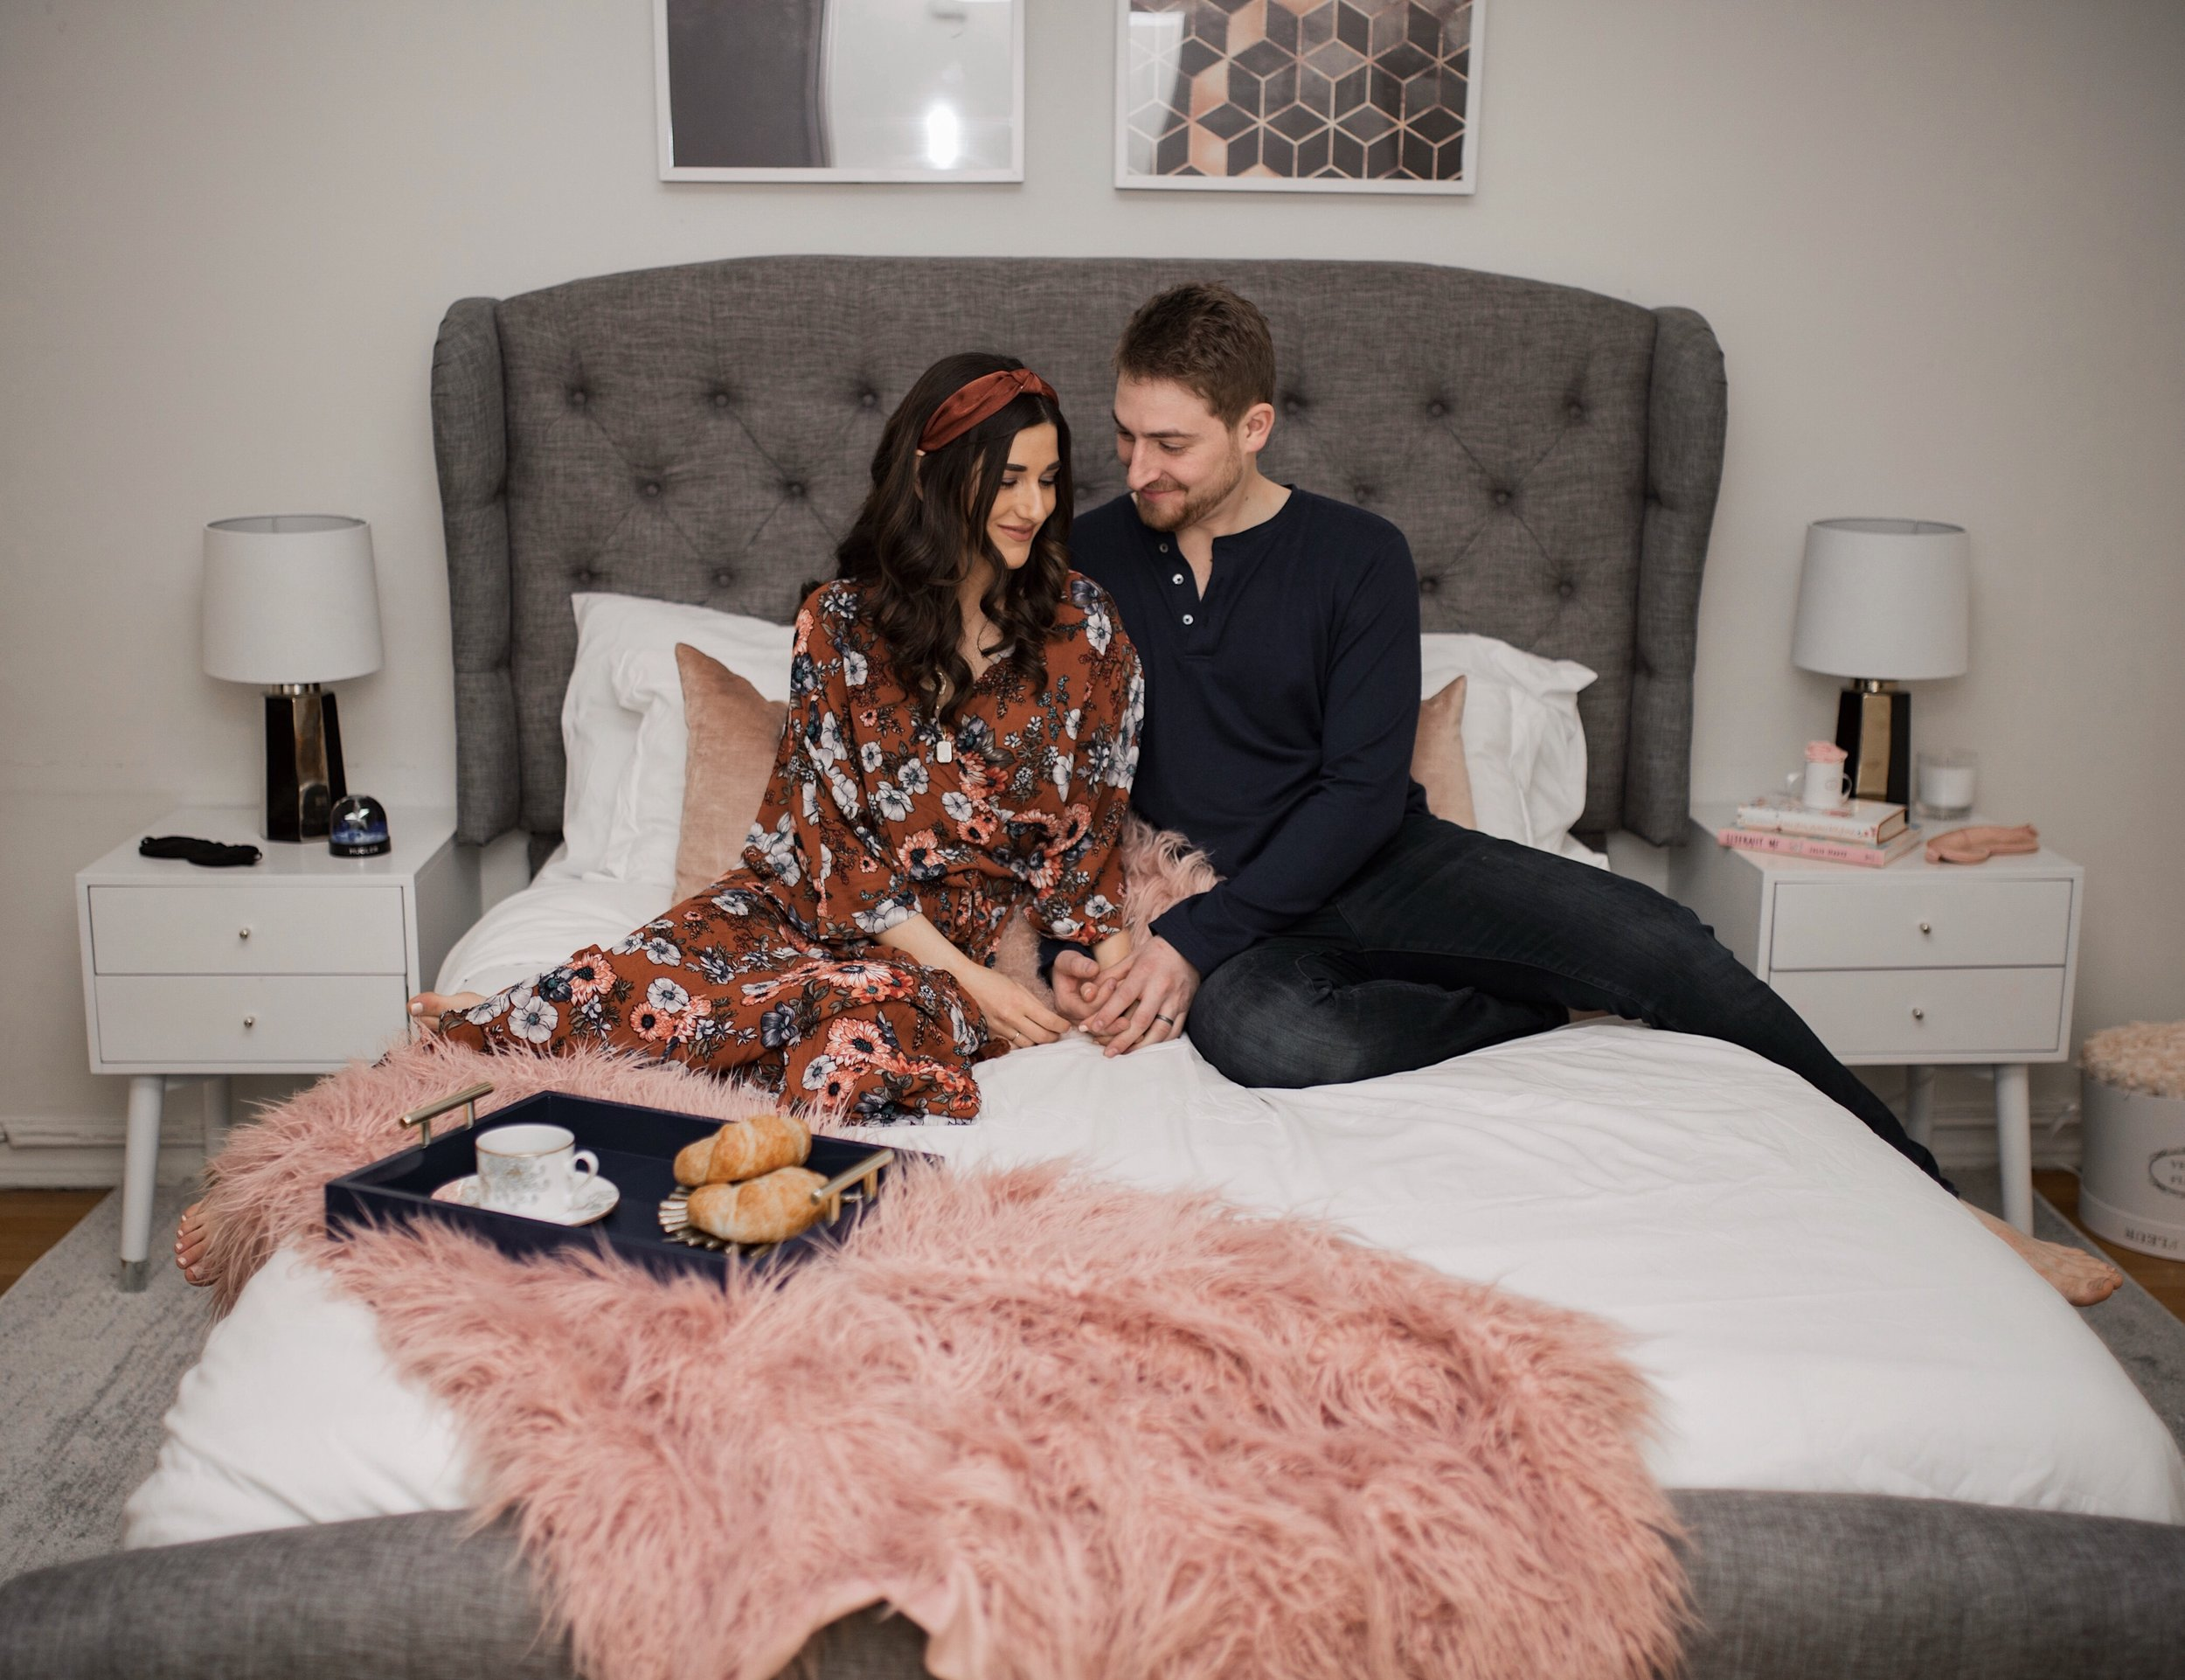 My Bedroom Reveal Joss & Main Esther Santer Fashion Blog NYC Street Style Blogger White Duvet Cover Pink Furry Throw Pillows Blanket Blush Gold Lamps Grey Bed Headboard Shopping Buy Beautiful Room  Furniture White Nightstands Art Navy Tray Breakfast.jpg